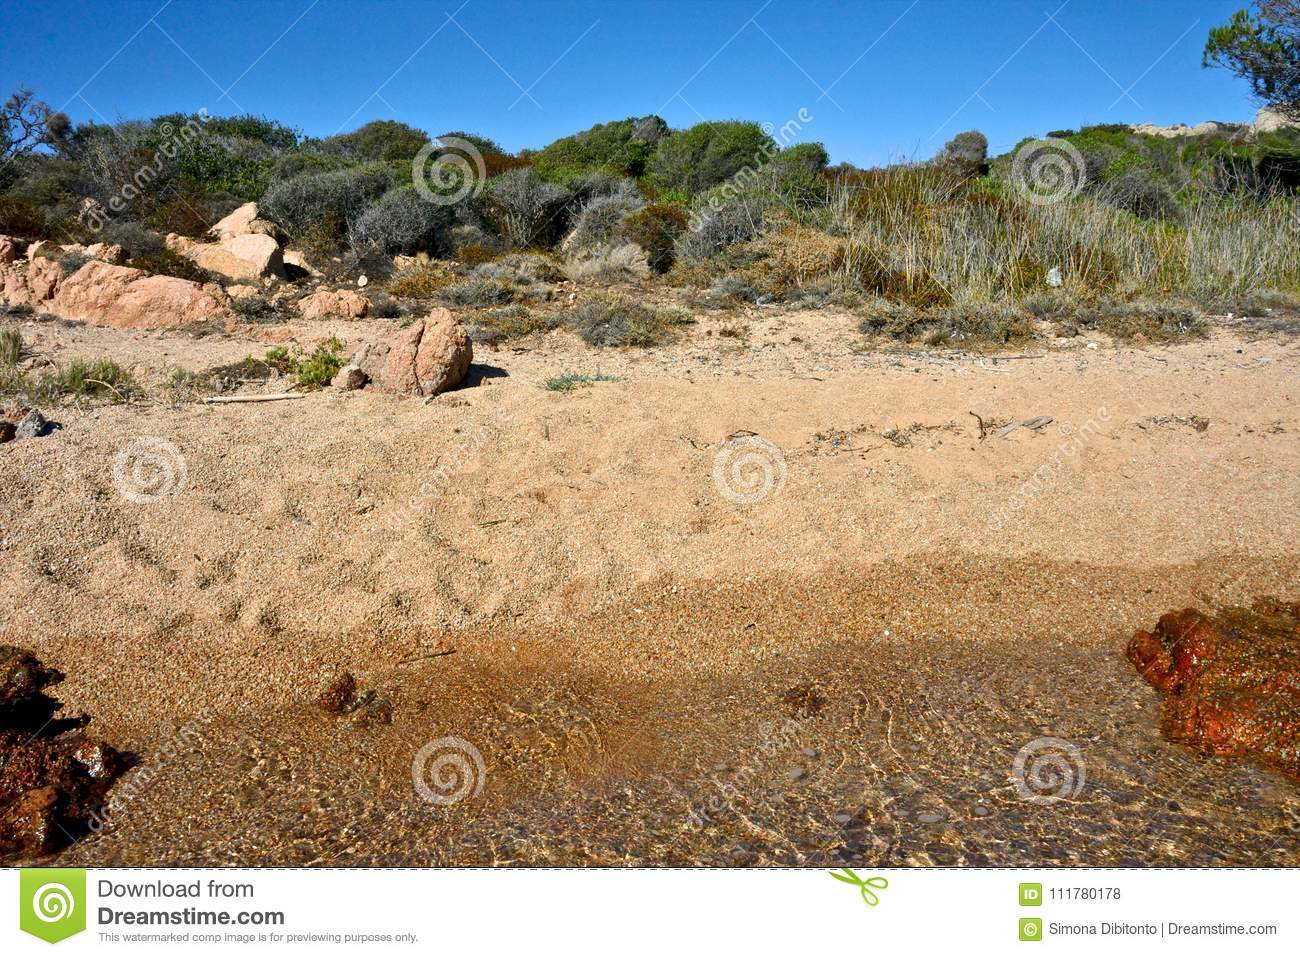 Wild nature on a sandy beach with the sea